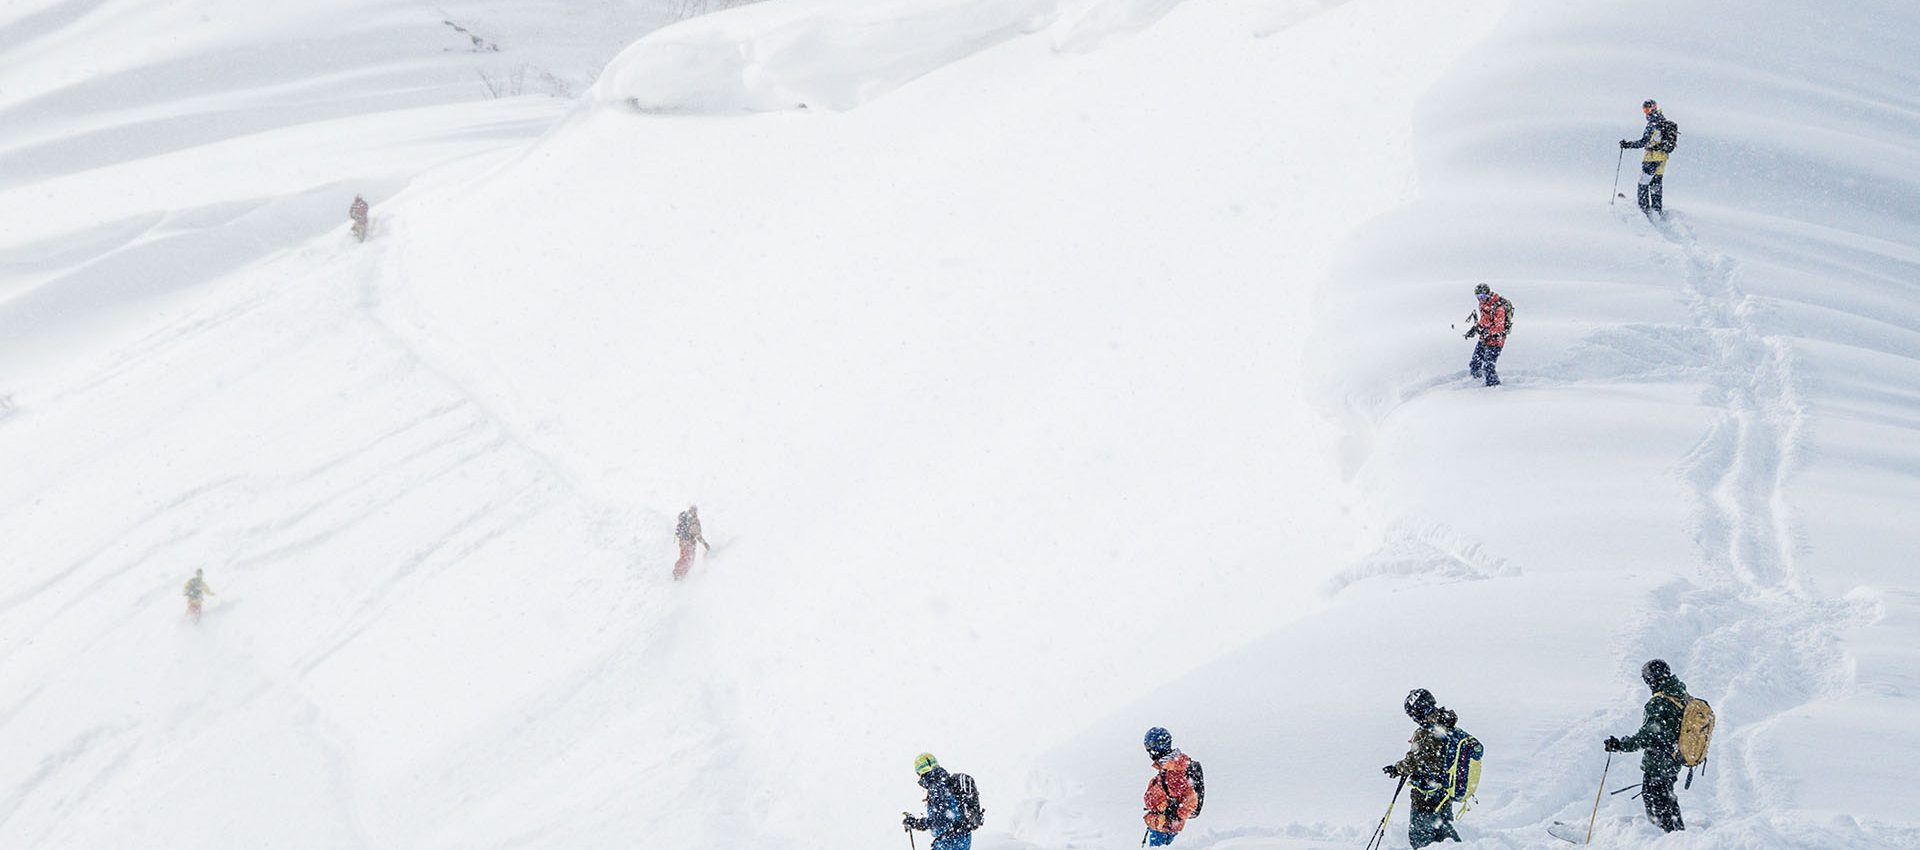 The ridges here have the biggest and softest snow pillows you have ever seen.